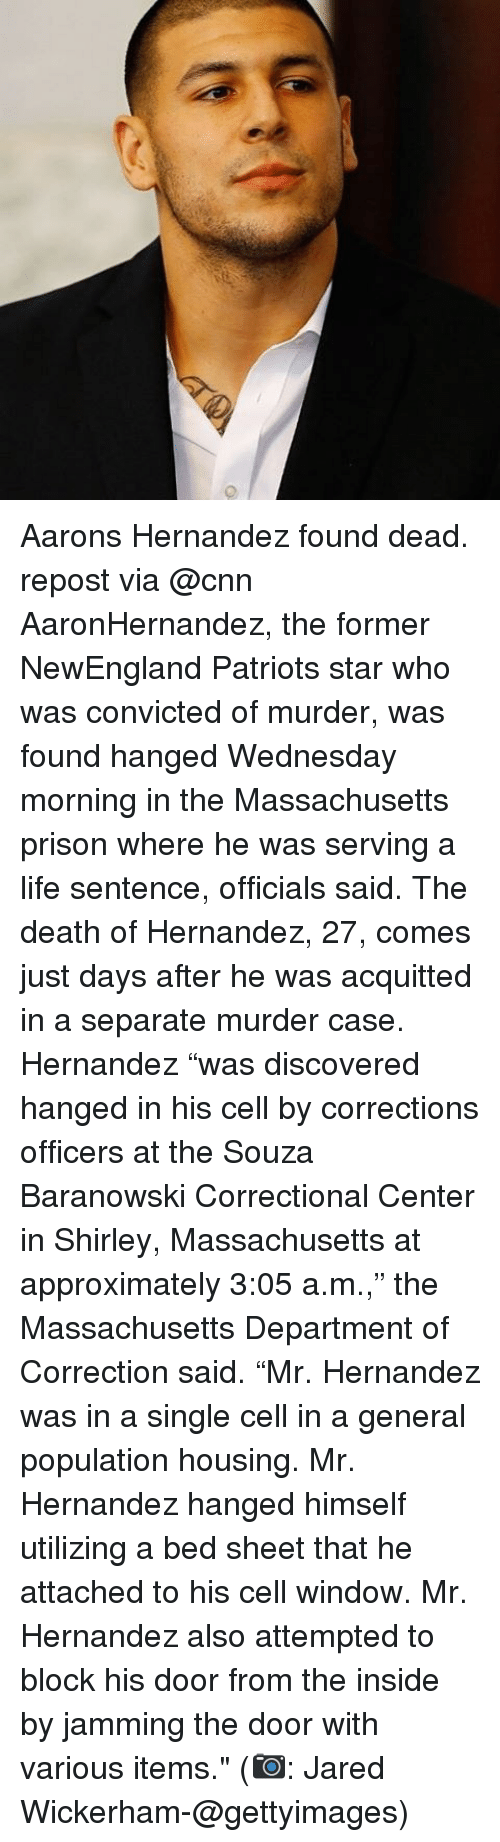 """cnn.com, Life, and Memes: Aarons Hernandez found dead. repost via @cnn AaronHernandez, the former NewEngland Patriots star who was convicted of murder, was found hanged Wednesday morning in the Massachusetts prison where he was serving a life sentence, officials said. The death of Hernandez, 27, comes just days after he was acquitted in a separate murder case. Hernandez """"was discovered hanged in his cell by corrections officers at the Souza Baranowski Correctional Center in Shirley, Massachusetts at approximately 3:05 a.m.,"""" the Massachusetts Department of Correction said. """"Mr. Hernandez was in a single cell in a general population housing. Mr. Hernandez hanged himself utilizing a bed sheet that he attached to his cell window. Mr. Hernandez also attempted to block his door from the inside by jamming the door with various items."""" (📷: Jared Wickerham-@gettyimages)"""